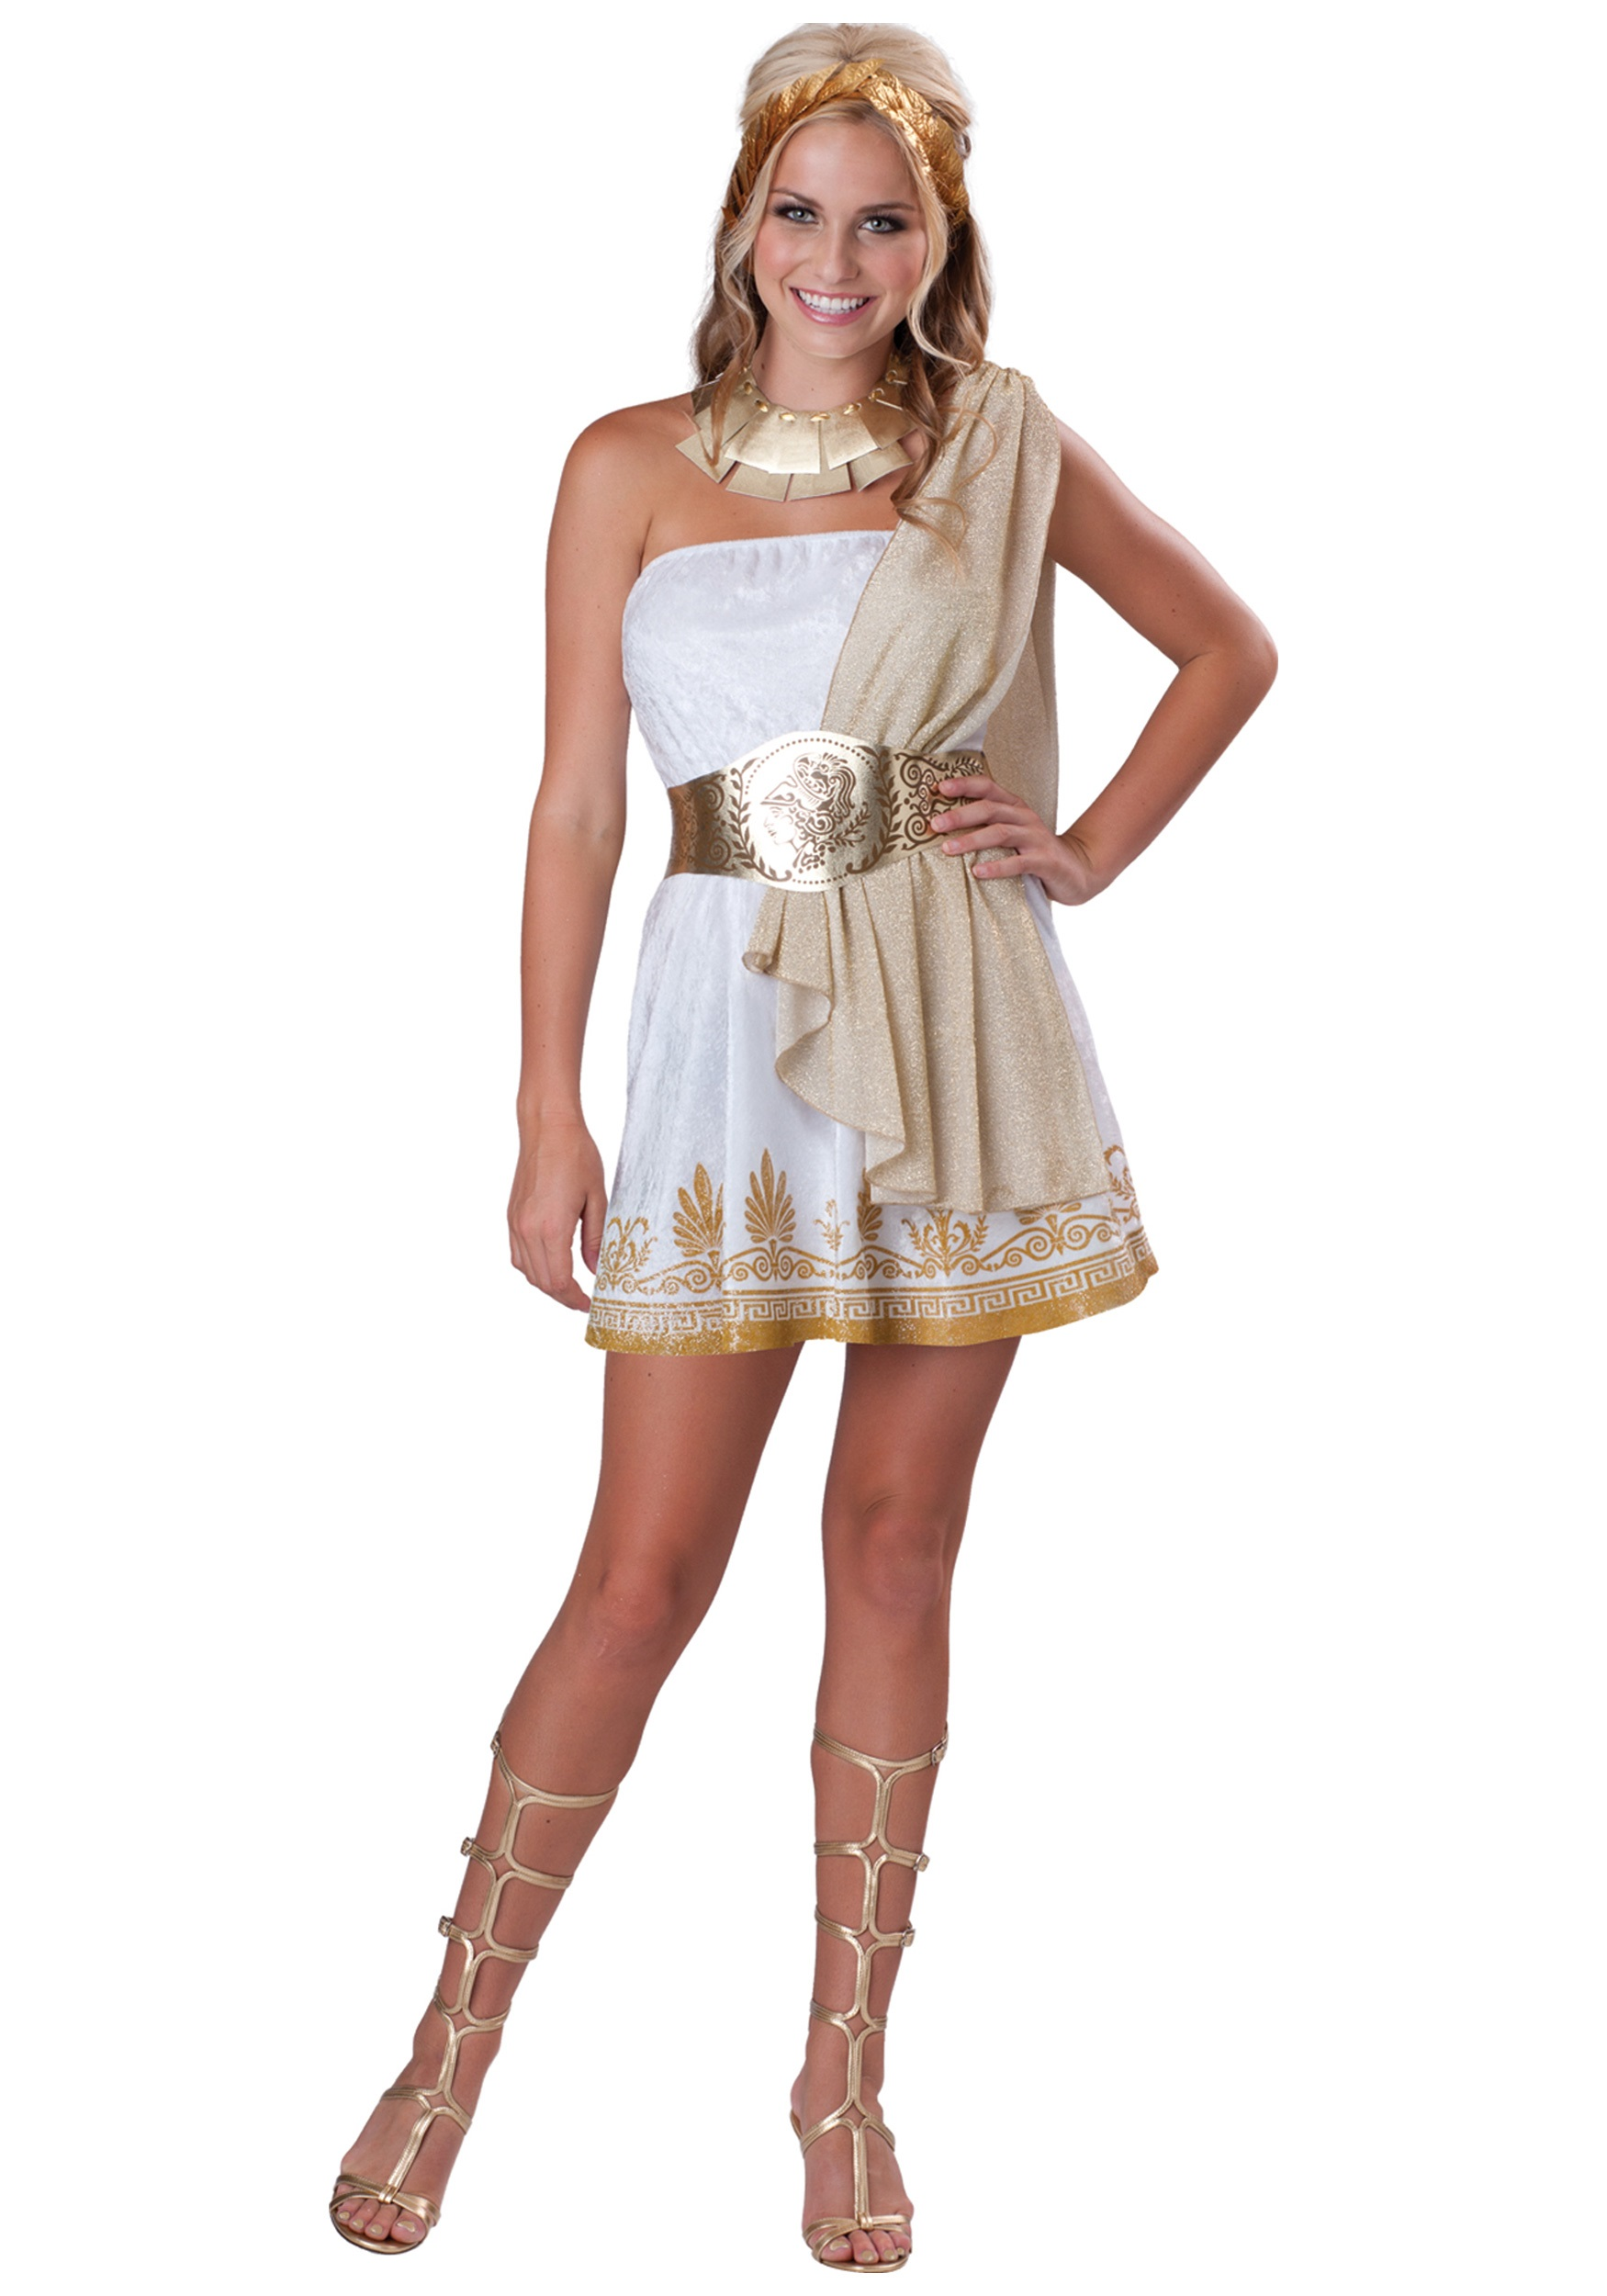 teen glitzy goddess costume - halloween costume ideas 2018